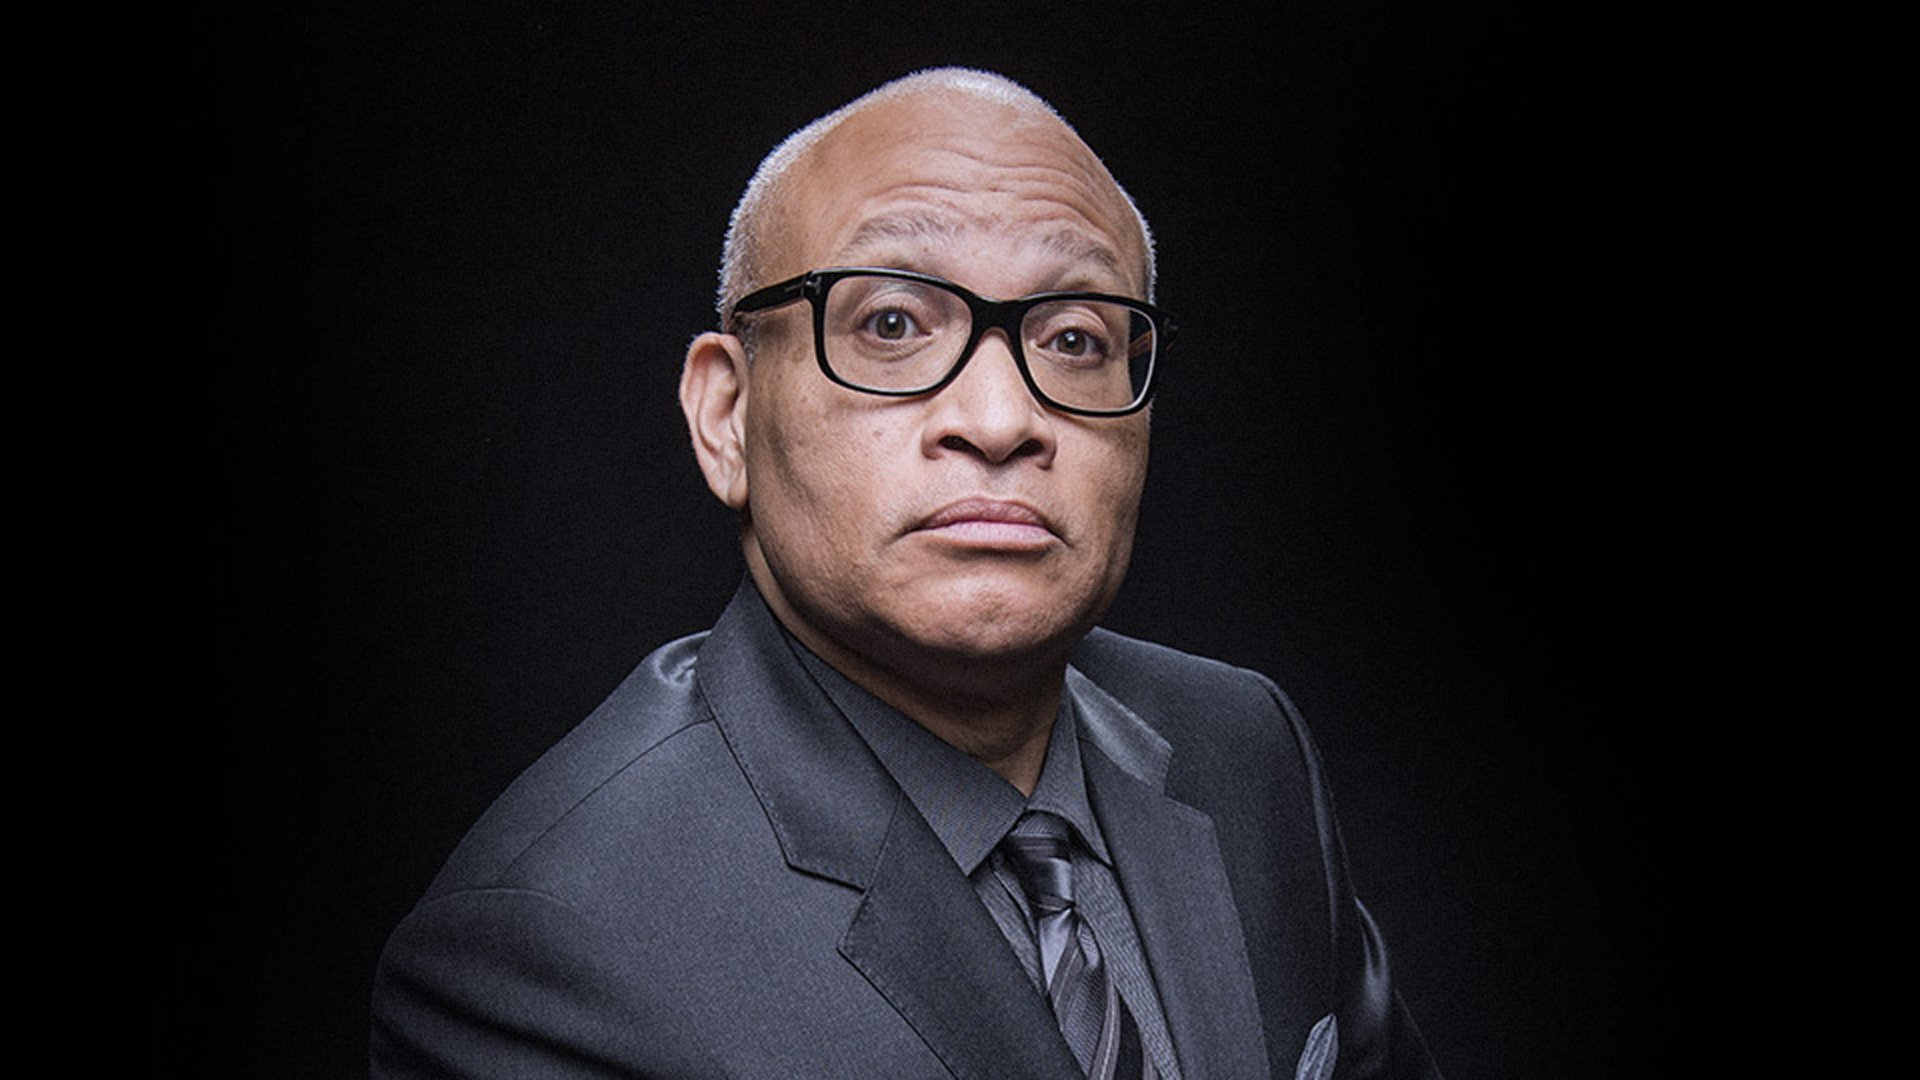 Hosted by Larry Wilmore